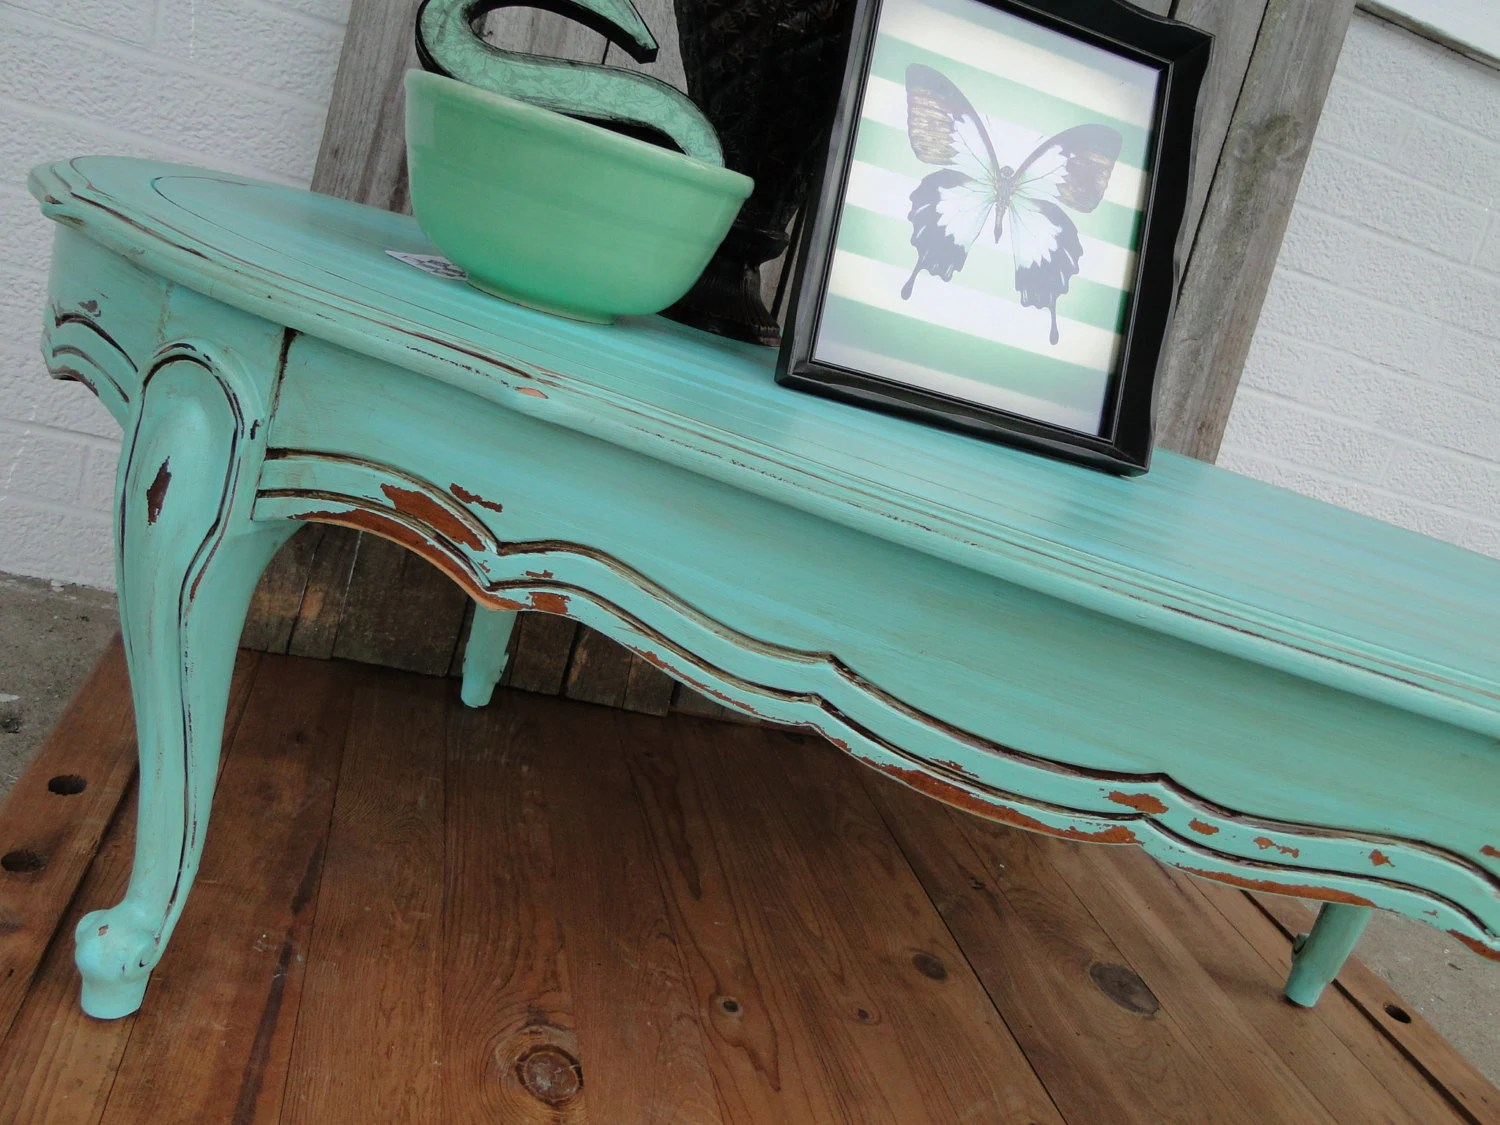 Rustic Beach Coffee Table Vintage Wooden Oval Coffee Table With Cuvy Legs In Distressed